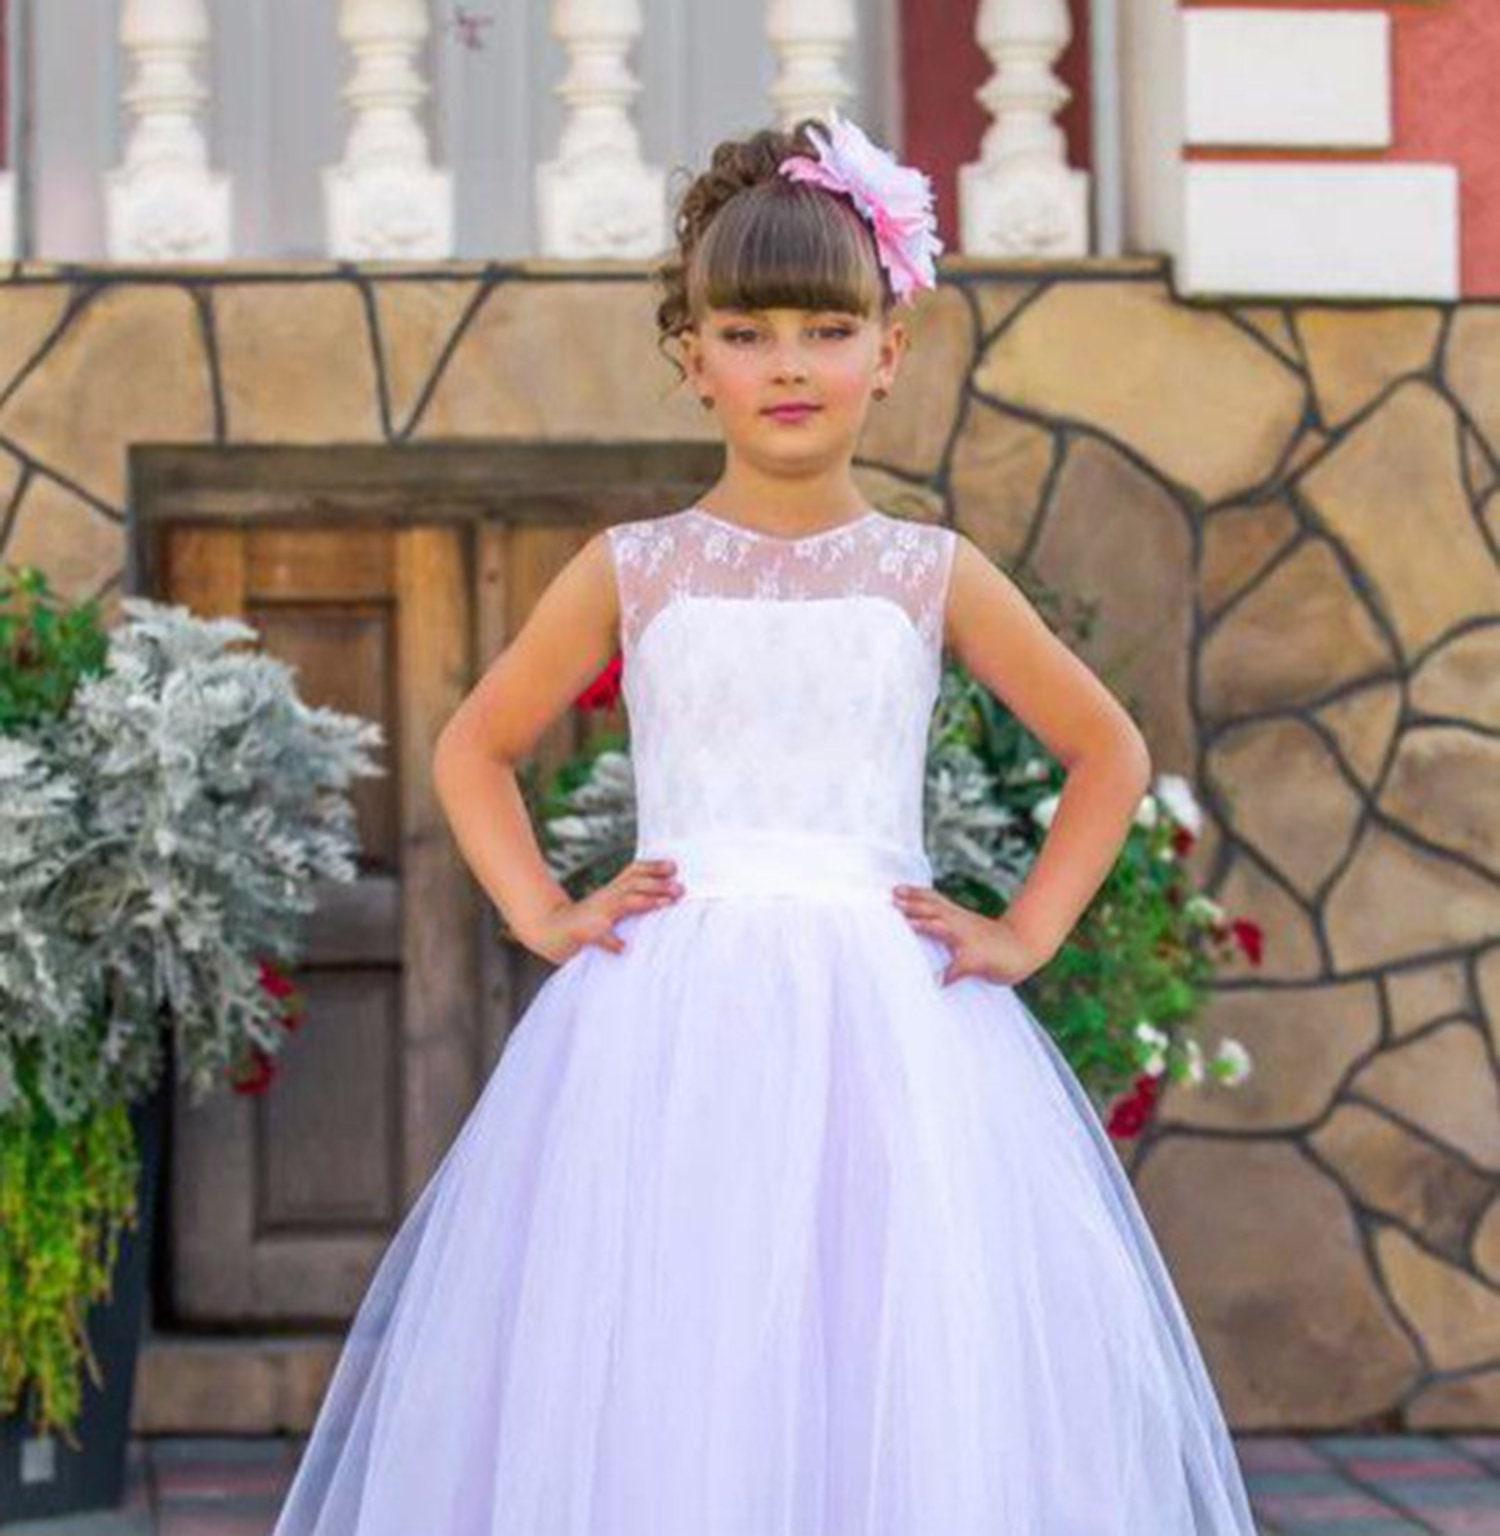 6c5e1e883f1 Party Flower Girl Dresses  Shop Flower Girl Dresses - Macy s